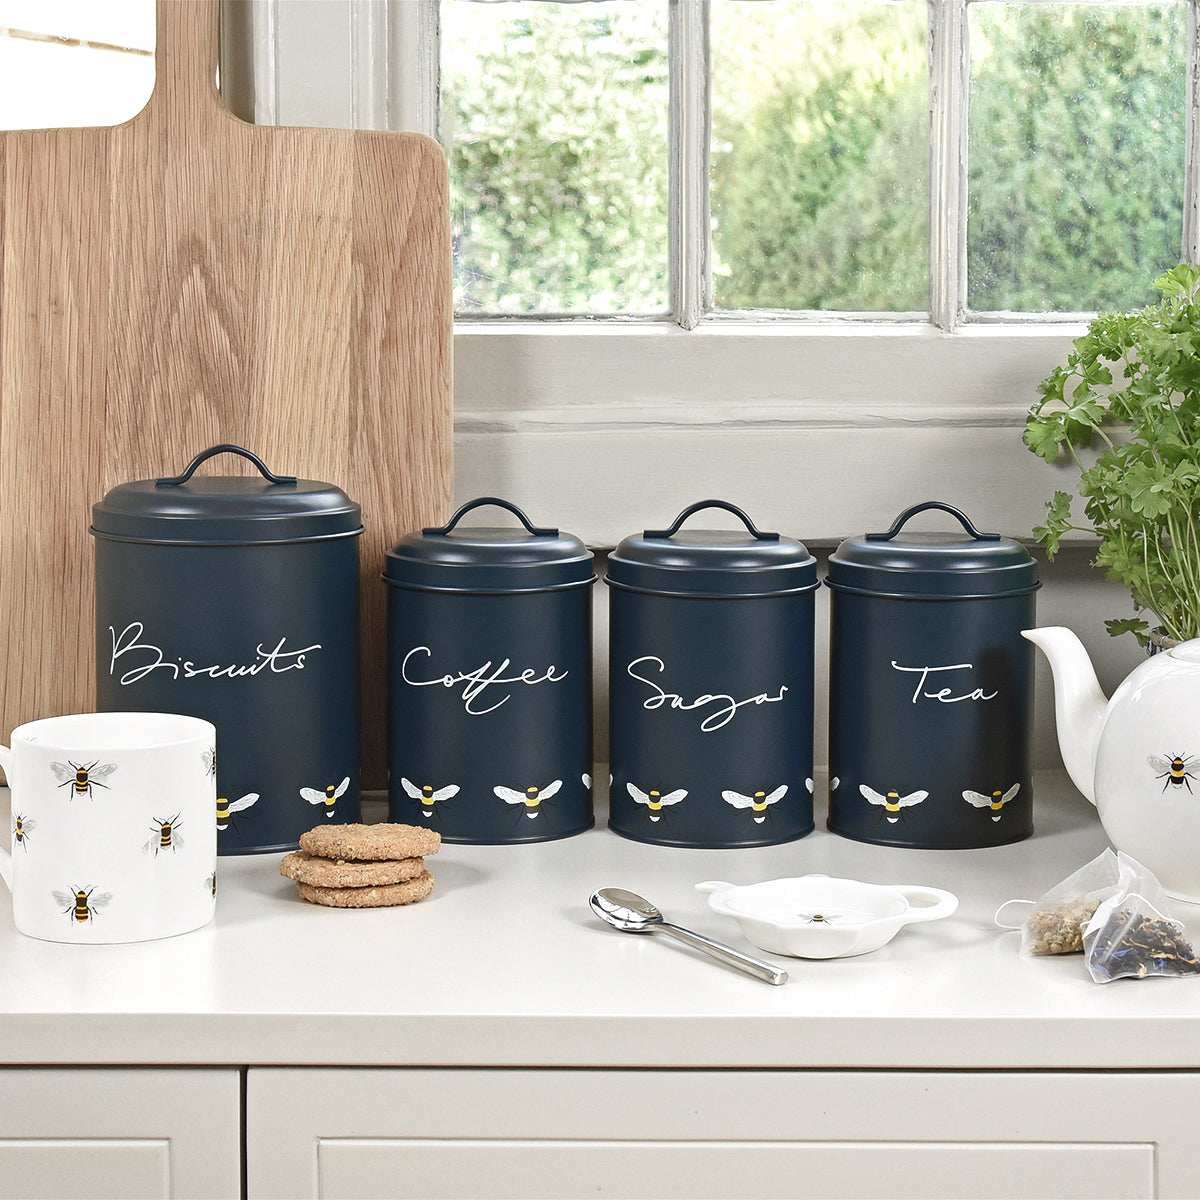 Sophie Allport biscuit tin with navy background and made from galvanised steel.